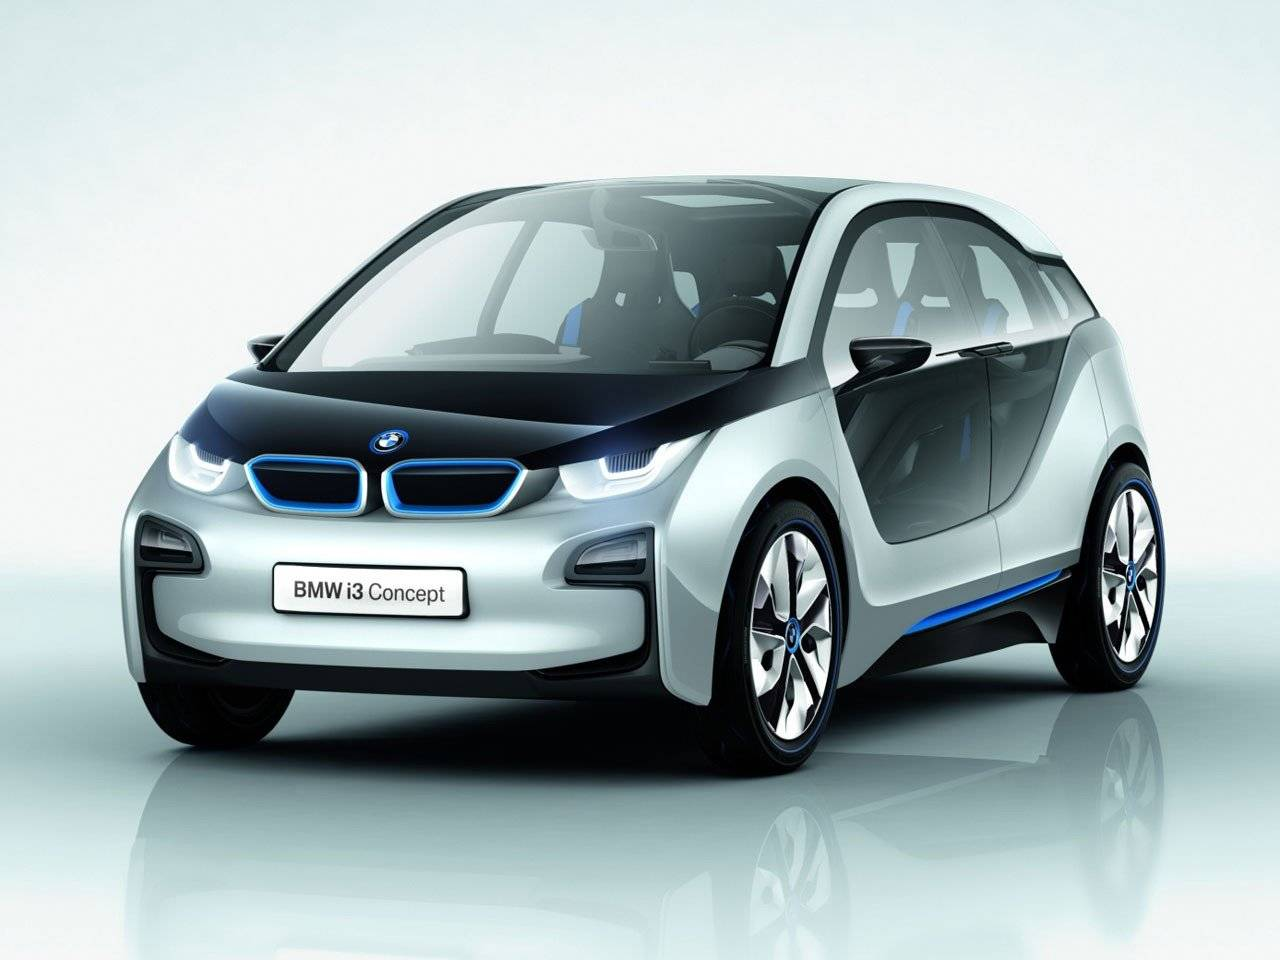 bmw onthult i3 en i8 concept autonieuws. Black Bedroom Furniture Sets. Home Design Ideas